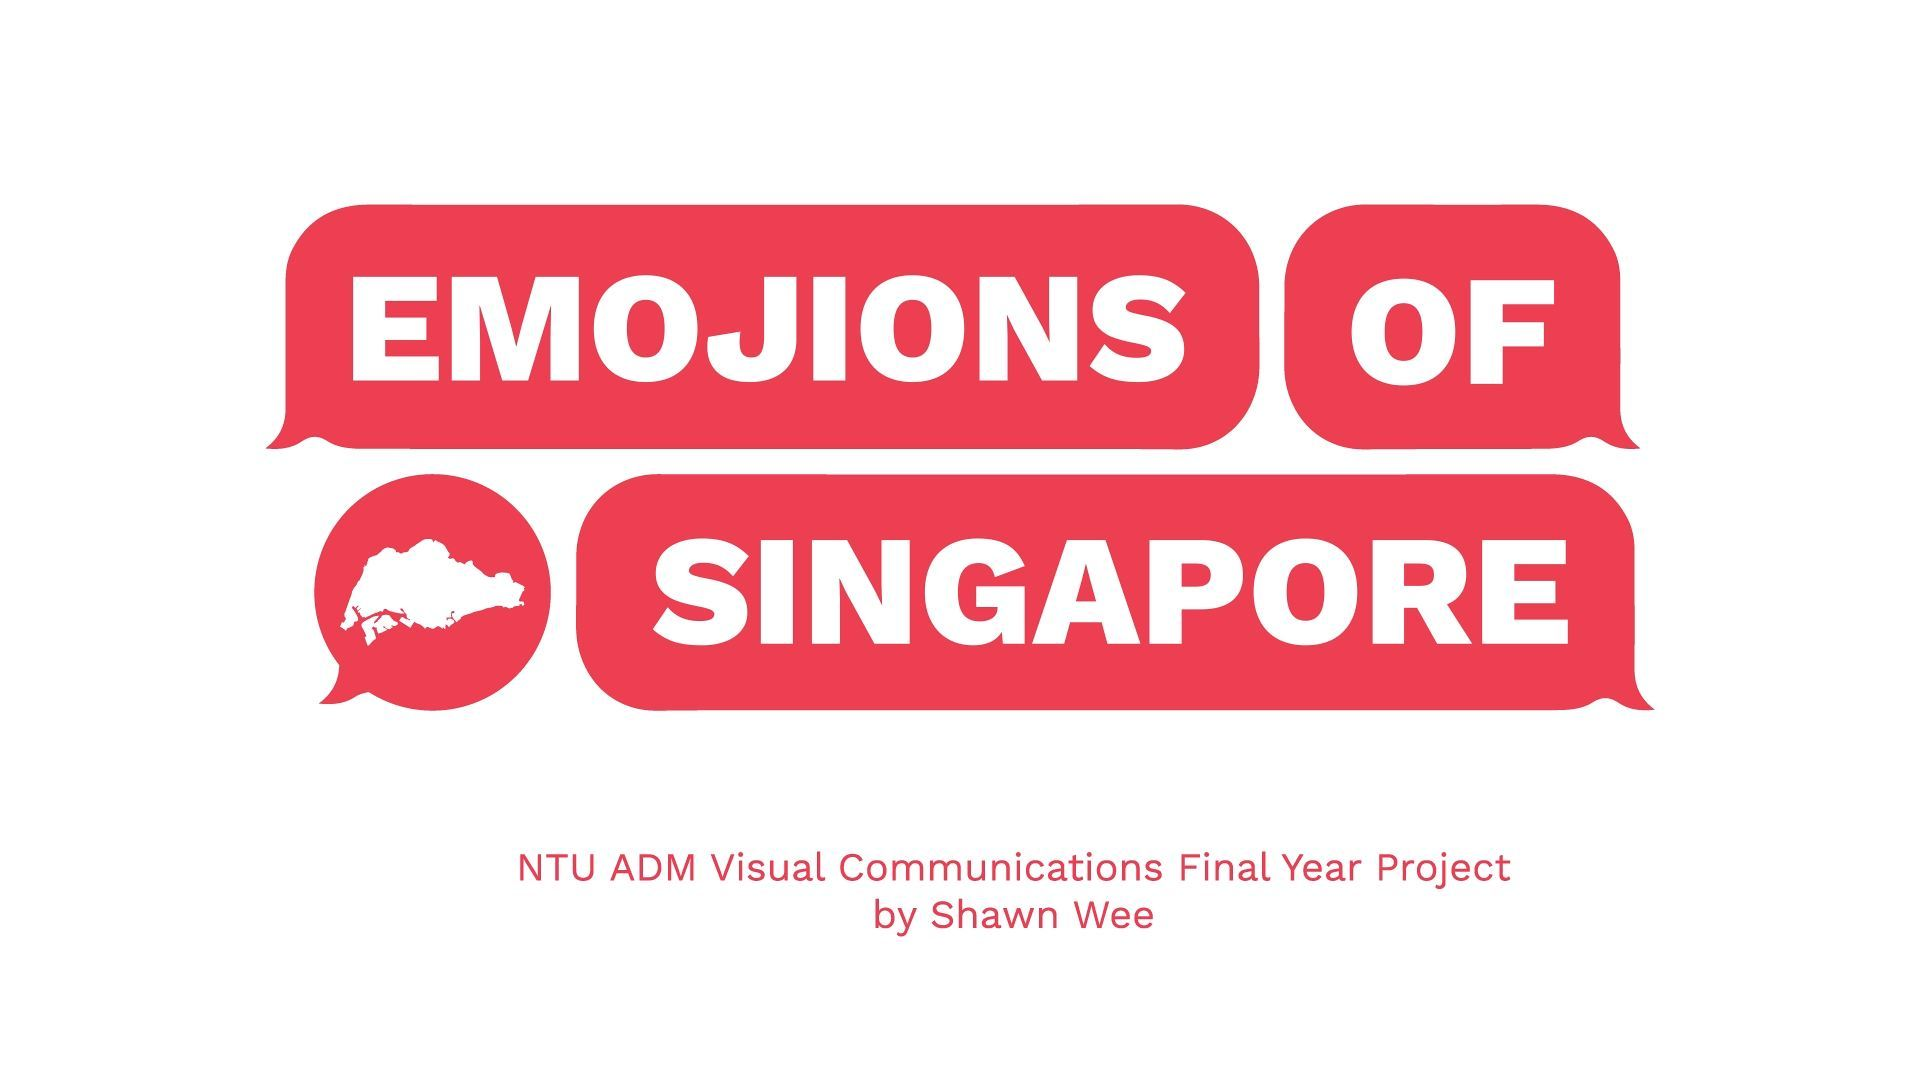 Emojions of Singapore at NTU ADM Portfolio